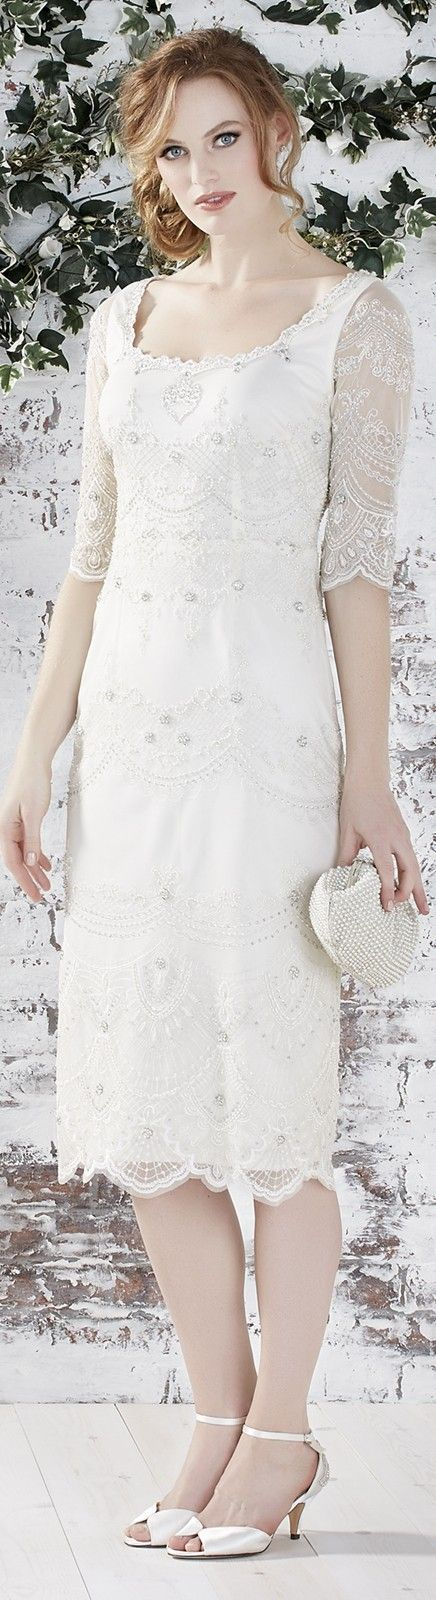 Informal Wedding Dresses For Older Brides: 25+ Cute Second Wedding Dresses Ideas On Pinterest